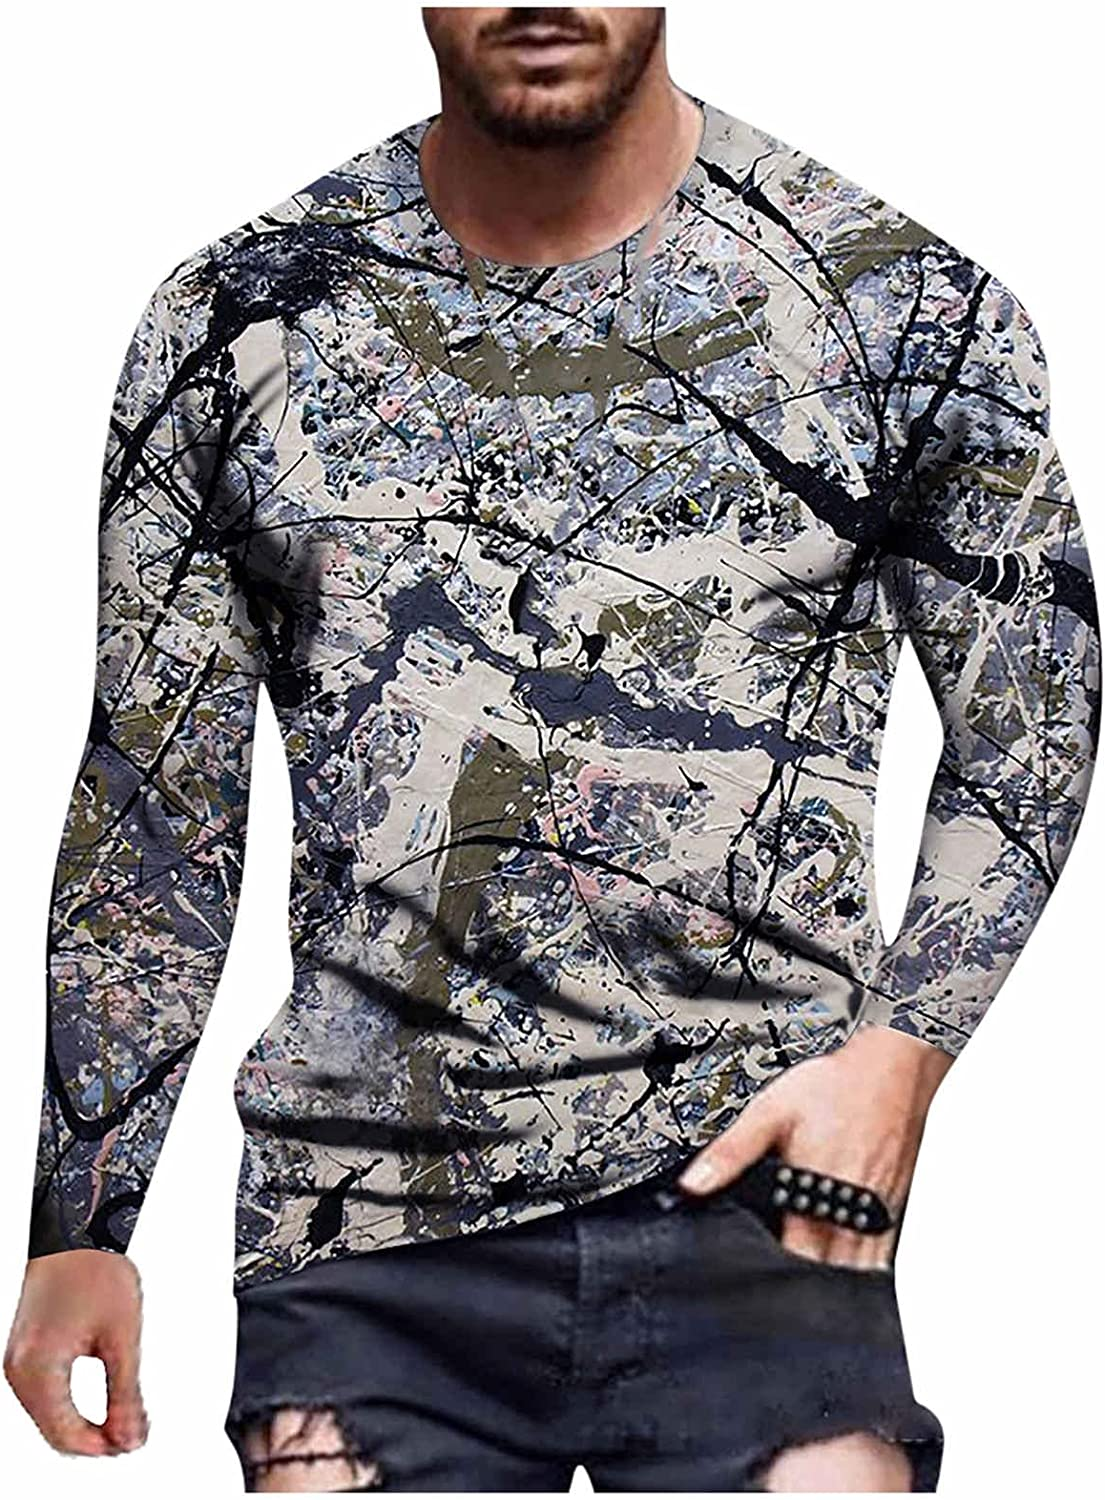 XXBR Soldier Long Sleeve T-shirts for Mens, Fall Street 3D Novelty Graphic Printed Workout Athletics Crewneck Tee Tops